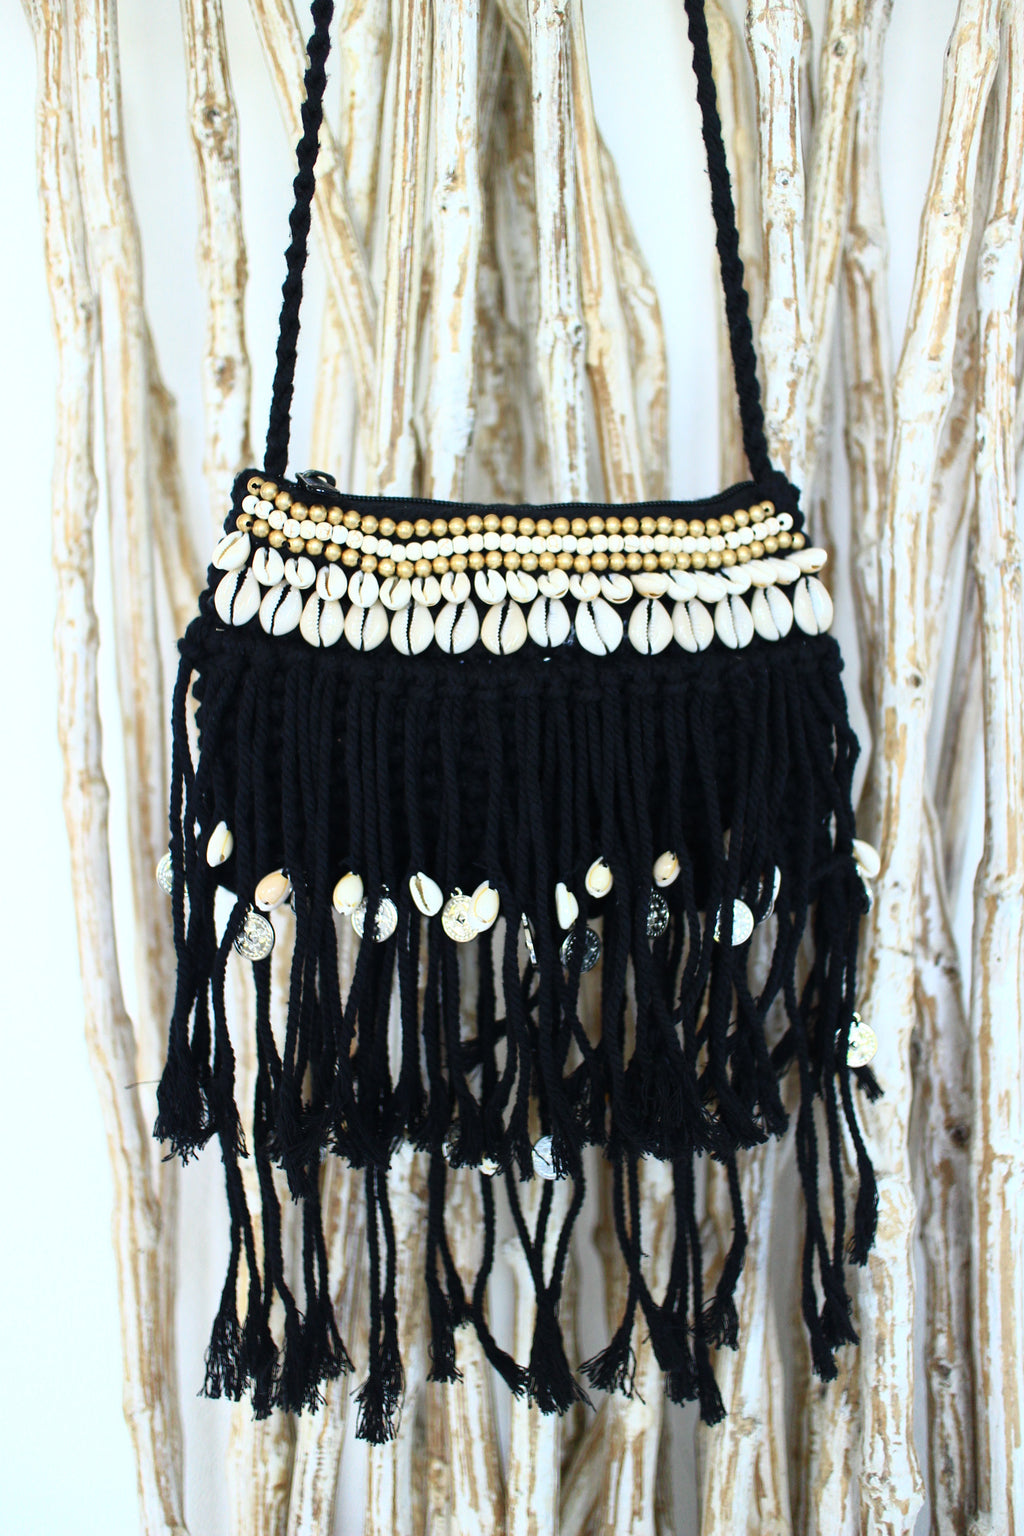 MERMAID WAVES FRINGE BAG